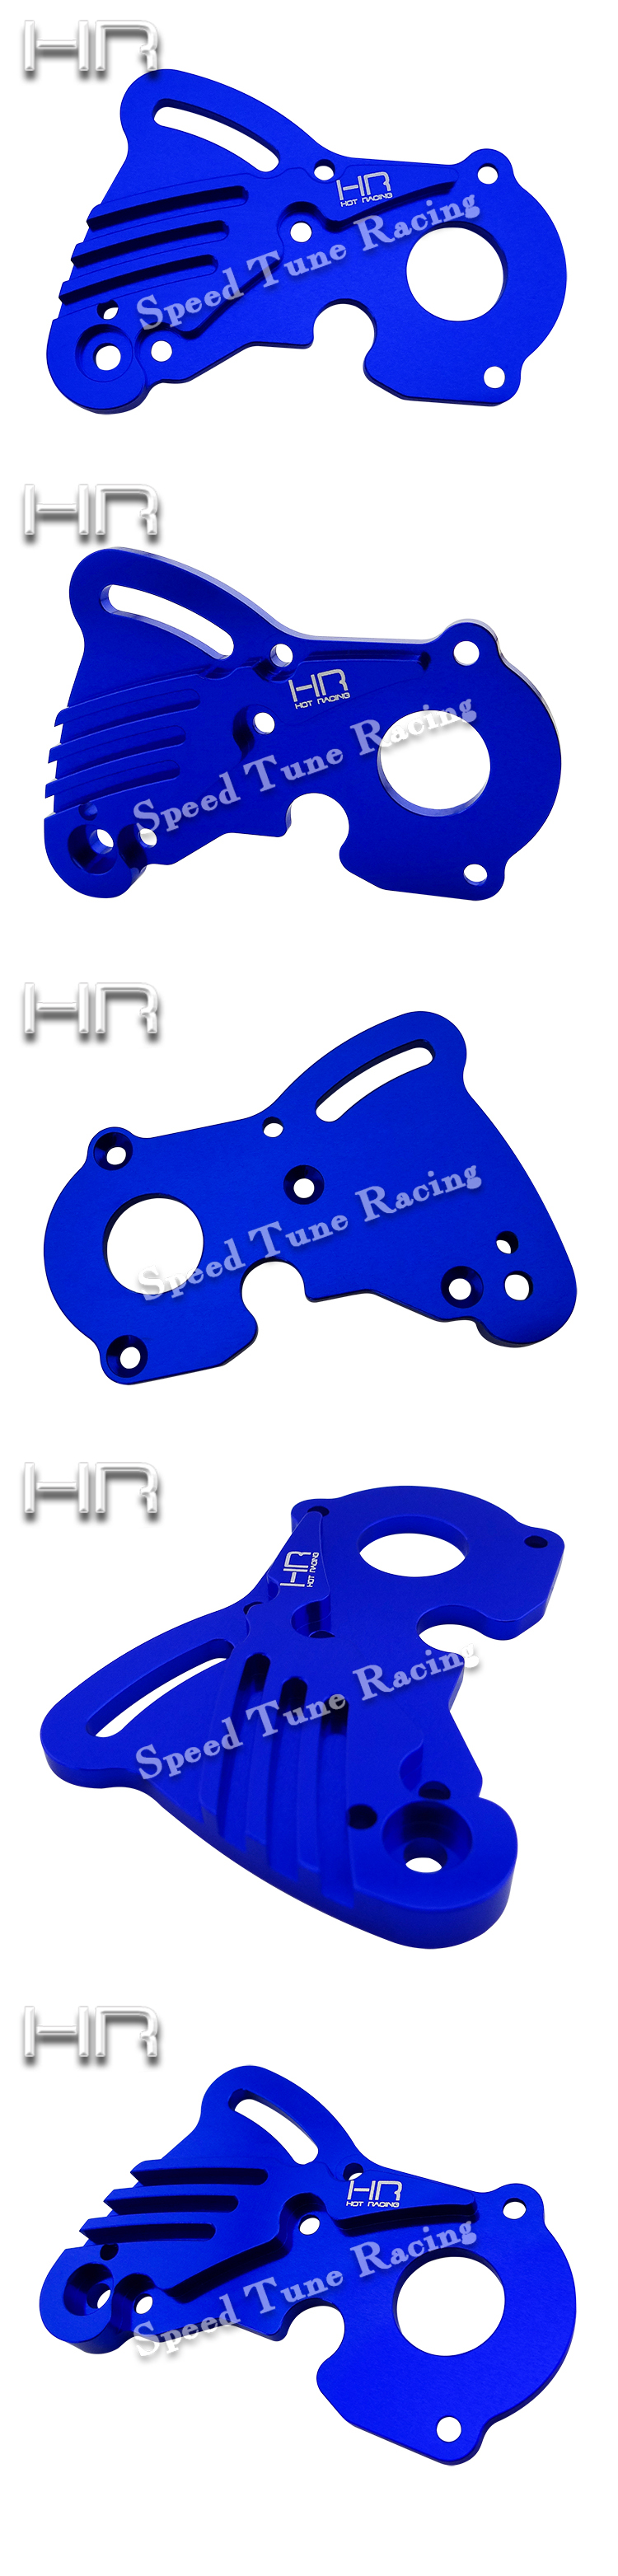 e 1 motor mount plate with heat sinks Fin REQUIREMENTS Installation E Revo brushless motor setup